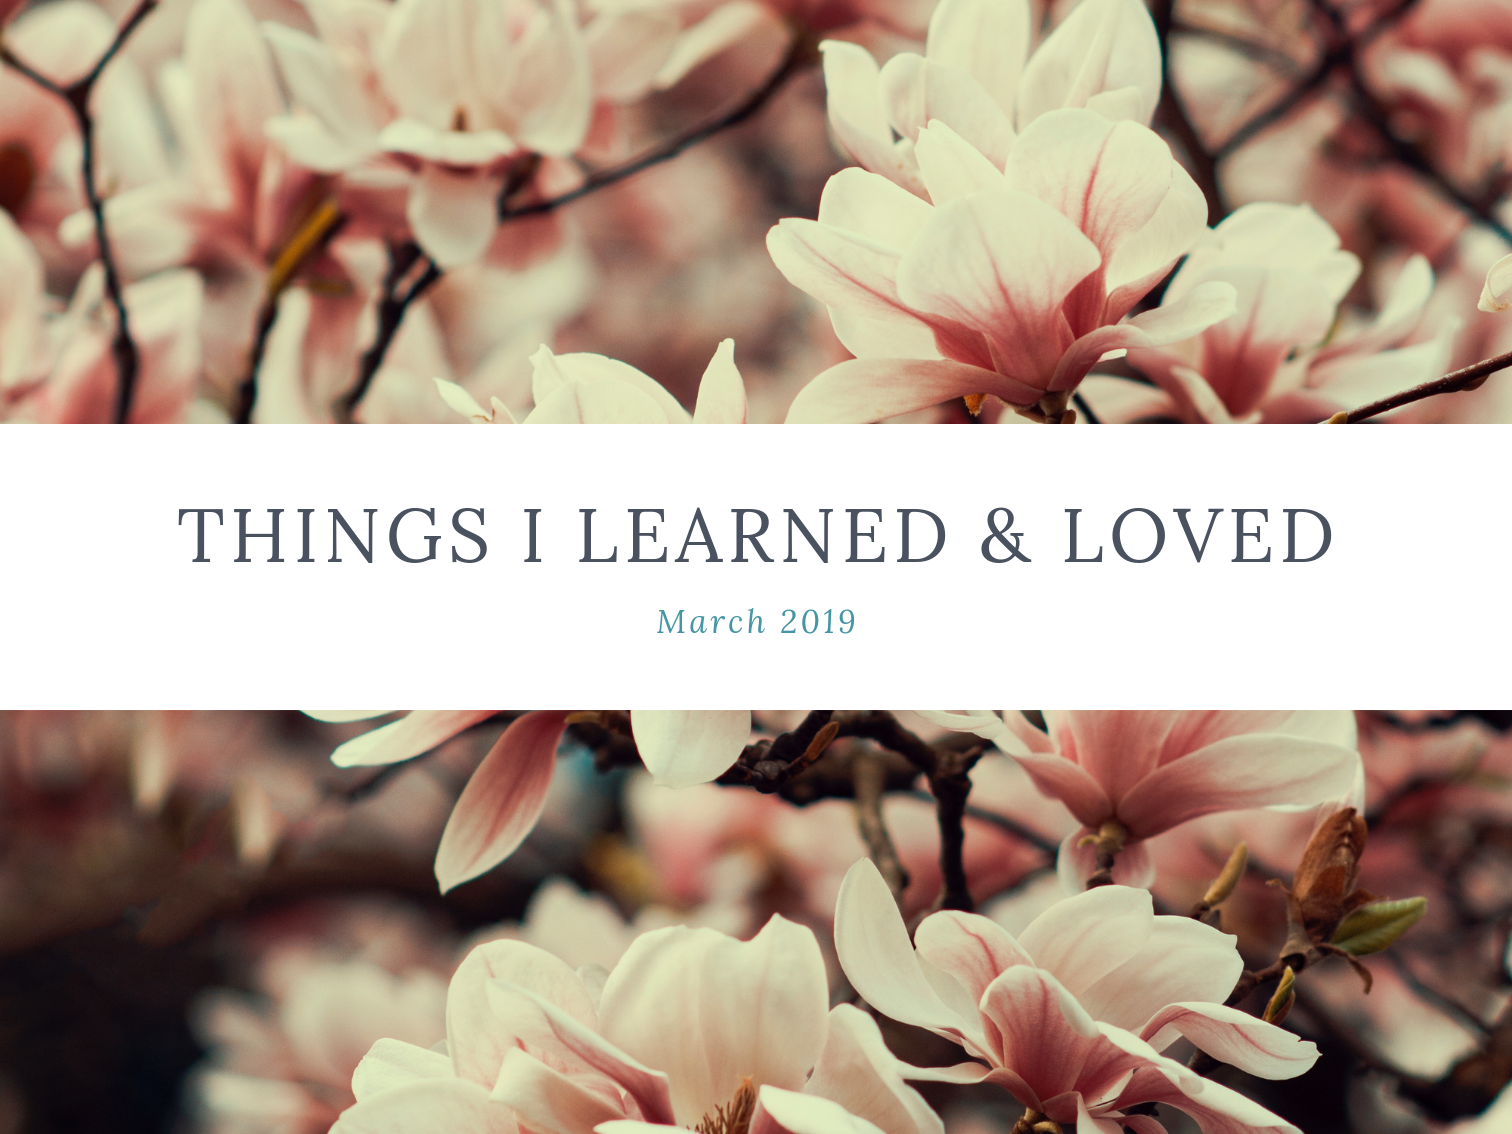 laura-rose-creative-things-I-learned-loved-march